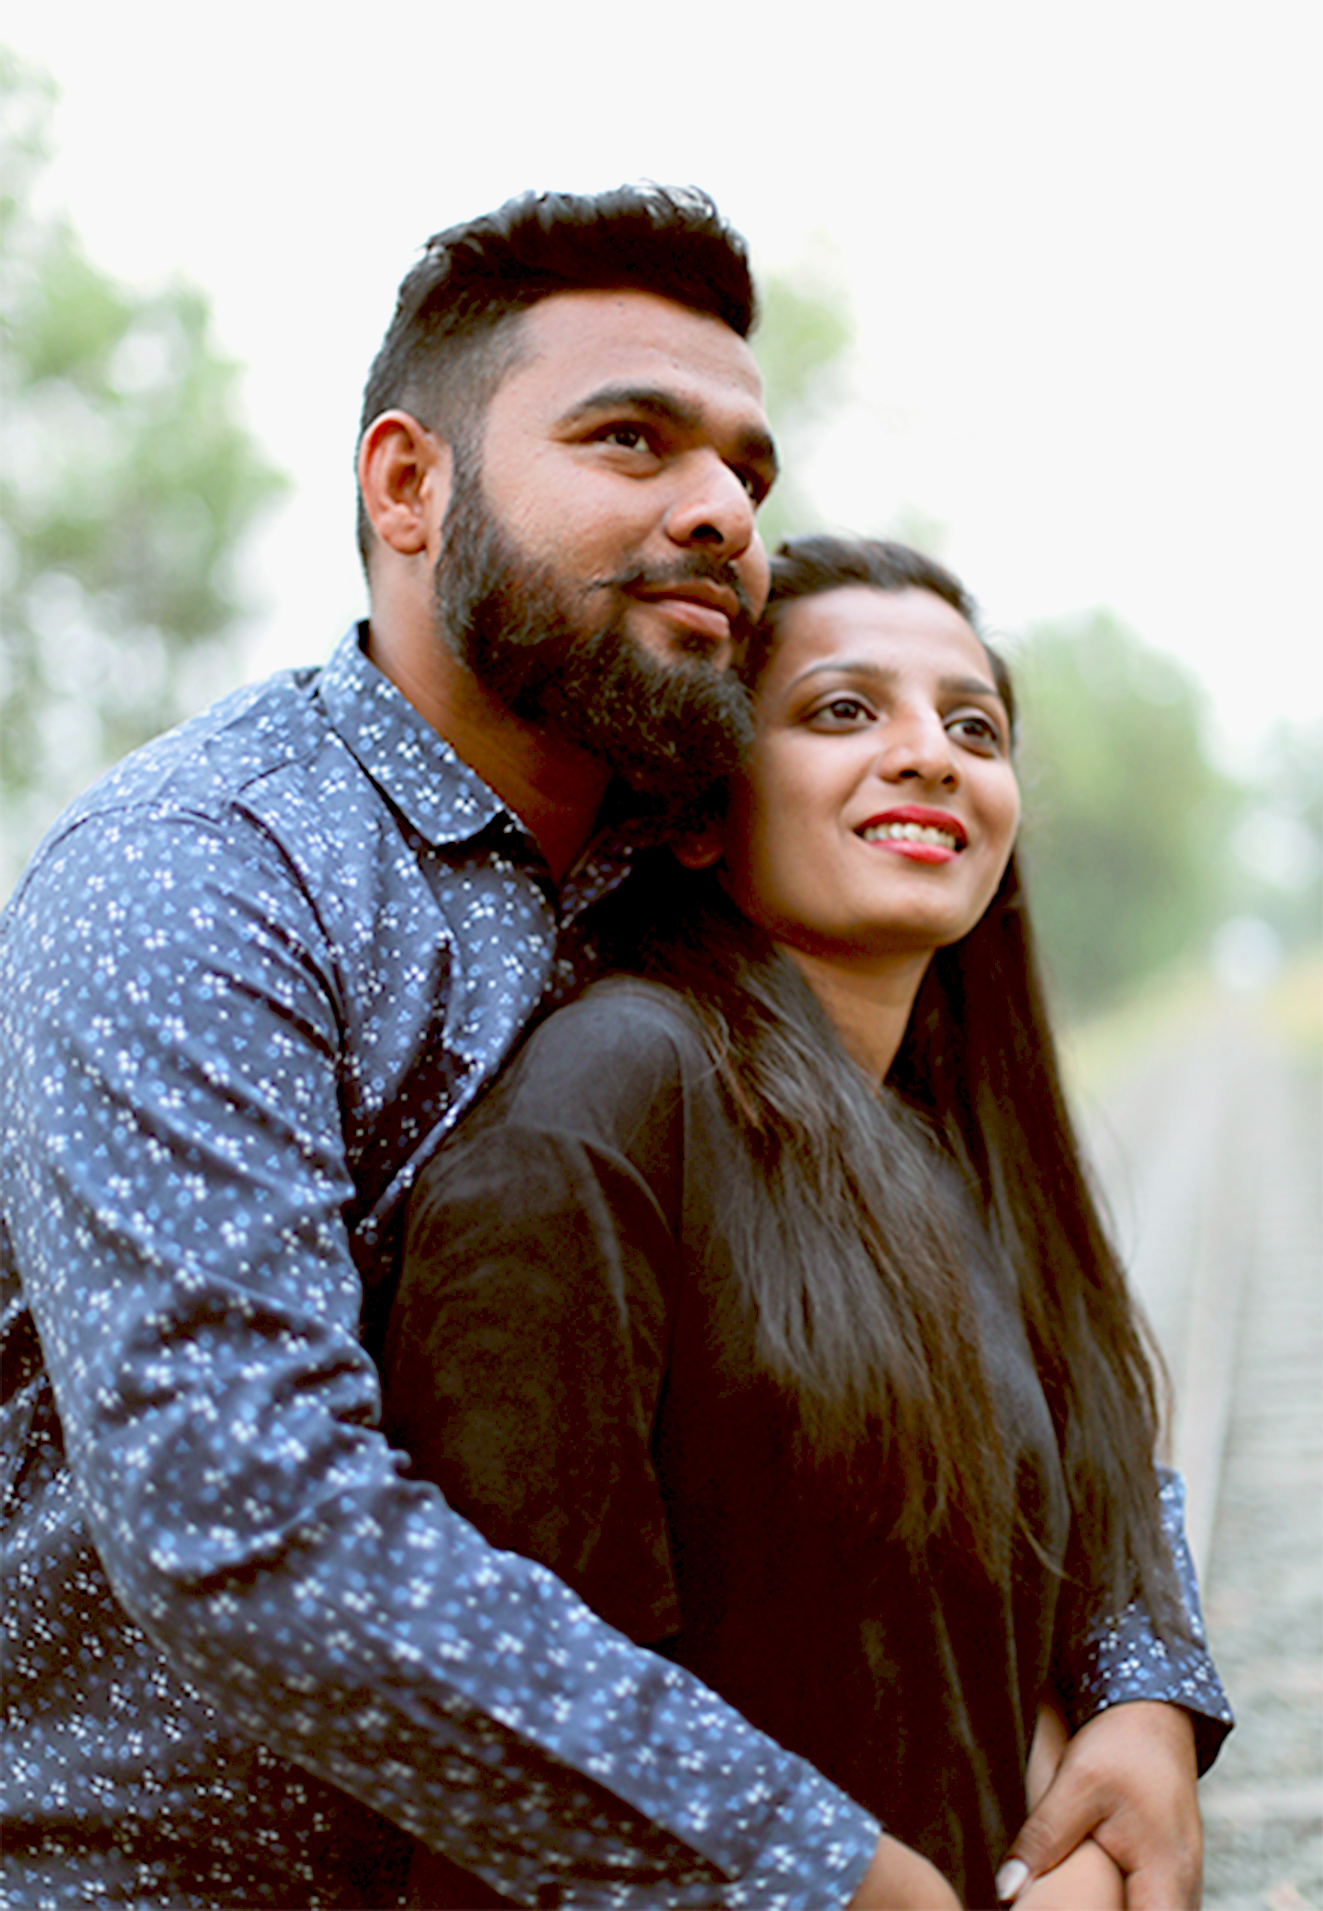 Shyam + Vruti Prewedding Photoshoot